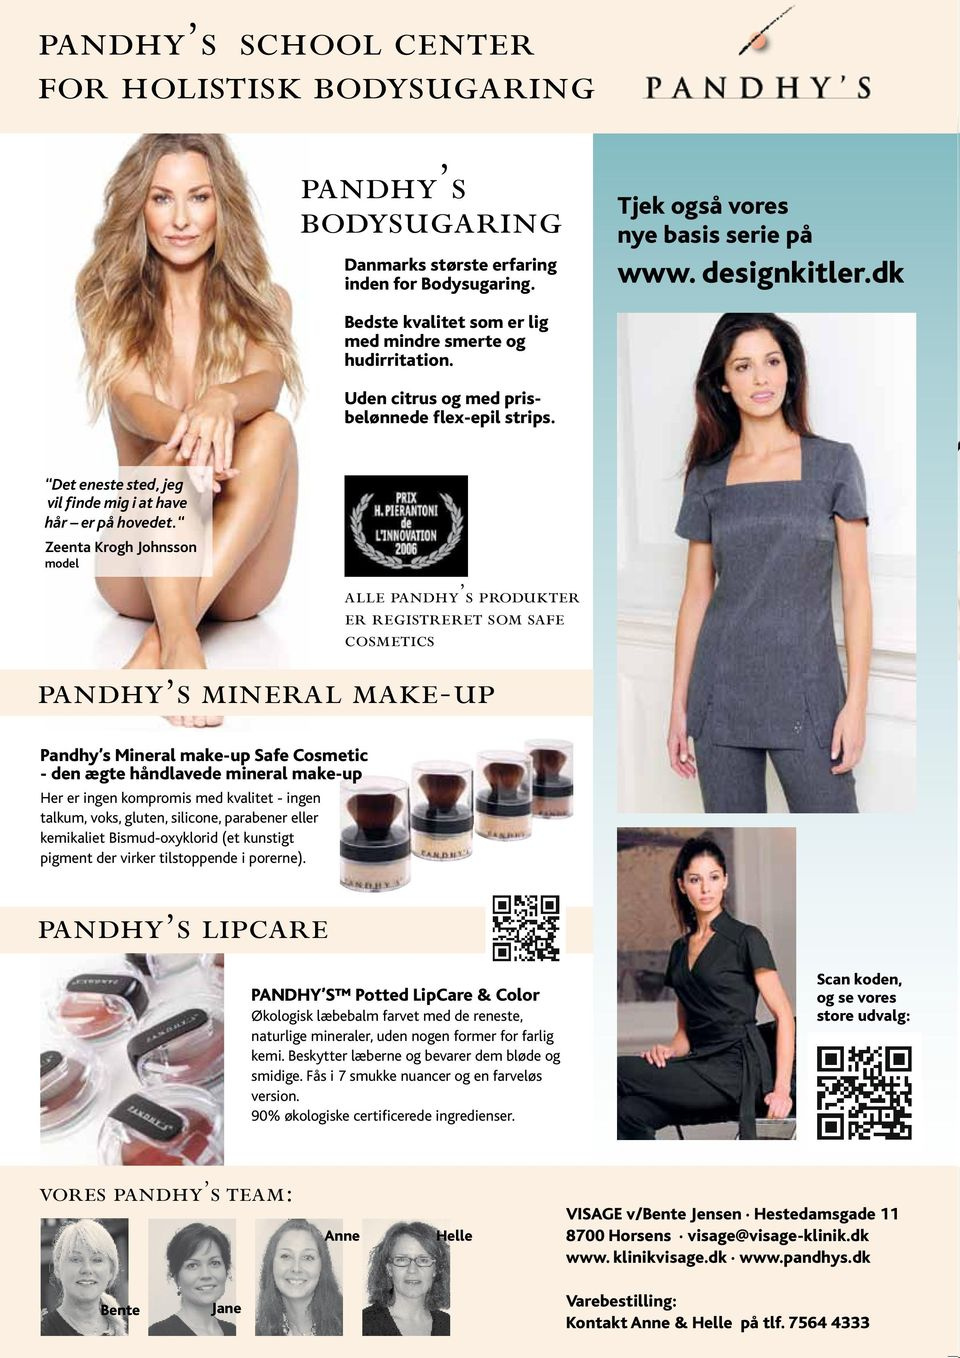 Zeenta Krogh Johnsson model pandhy s mineral make-up Pandhy s Mineral make-up Safe Cosmetic - den ægte håndlavede mineral make-up Her er ingen kompromis med kvalitet - ingen talkum, voks, gluten,